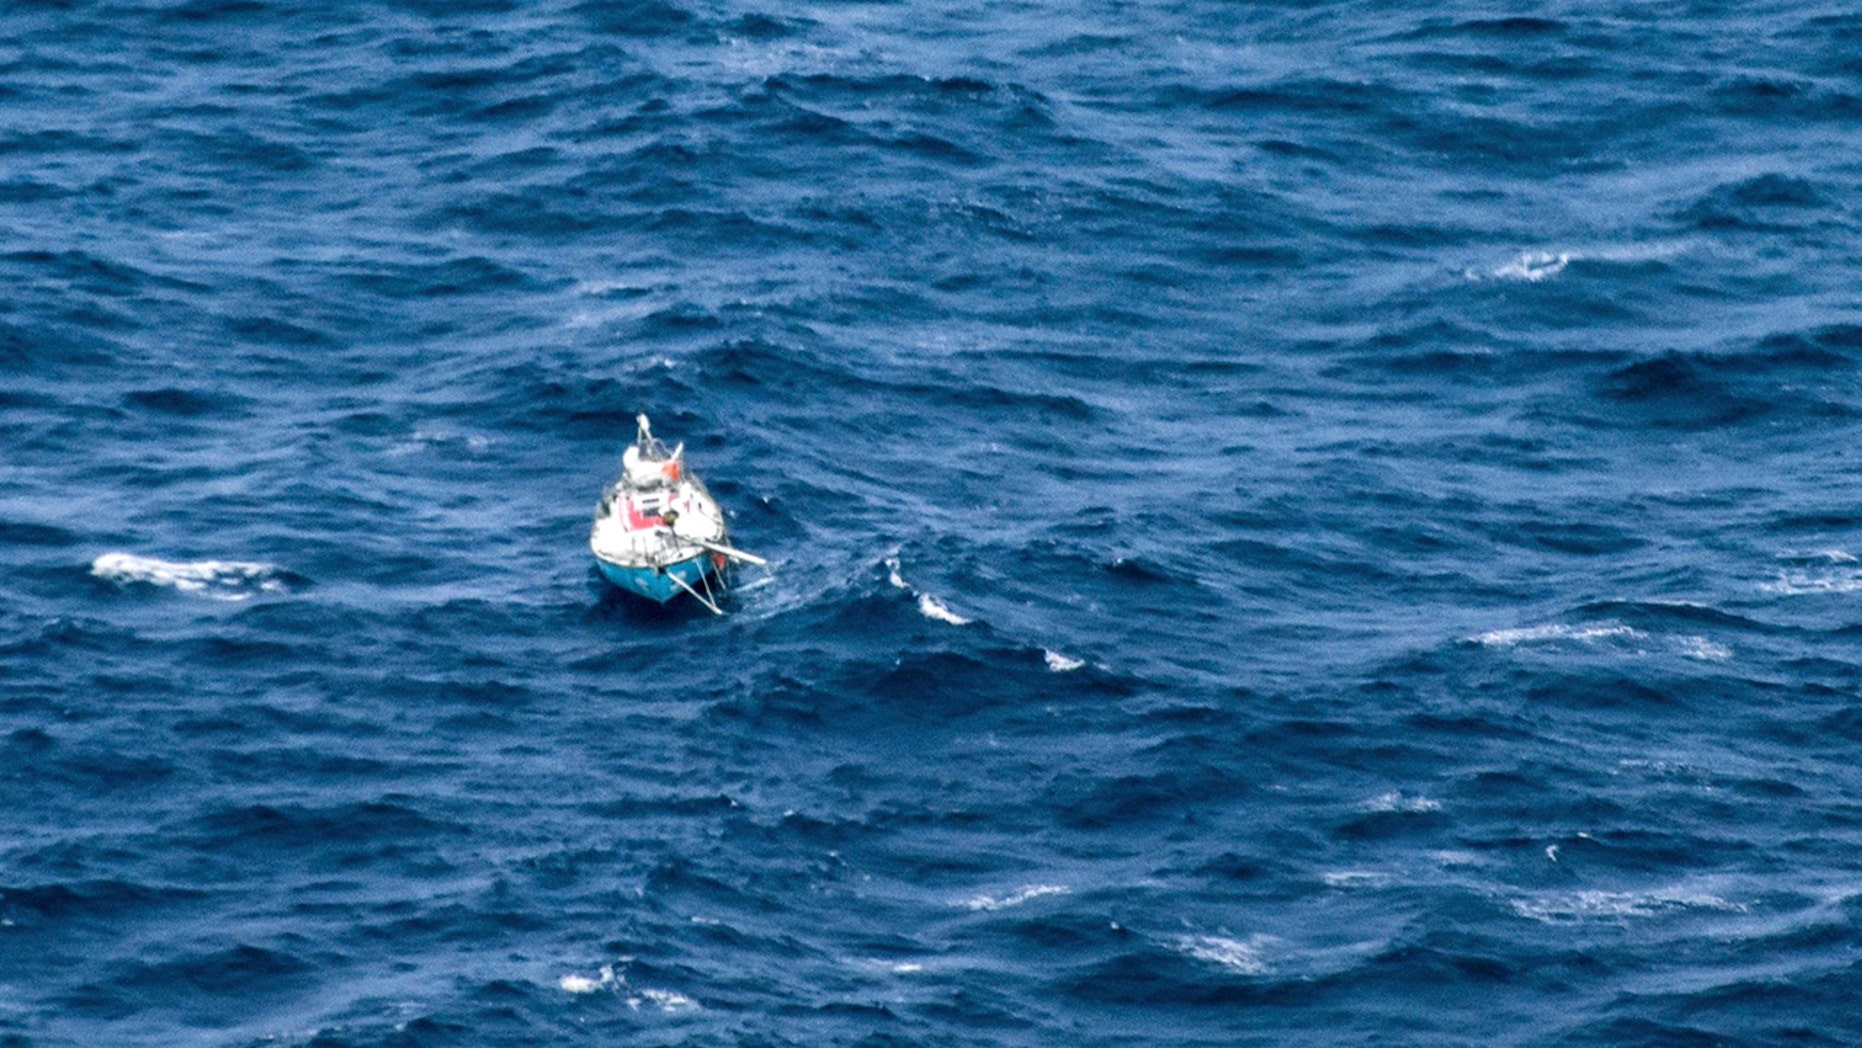 sailor injured during solo race rescued from indian ocean after